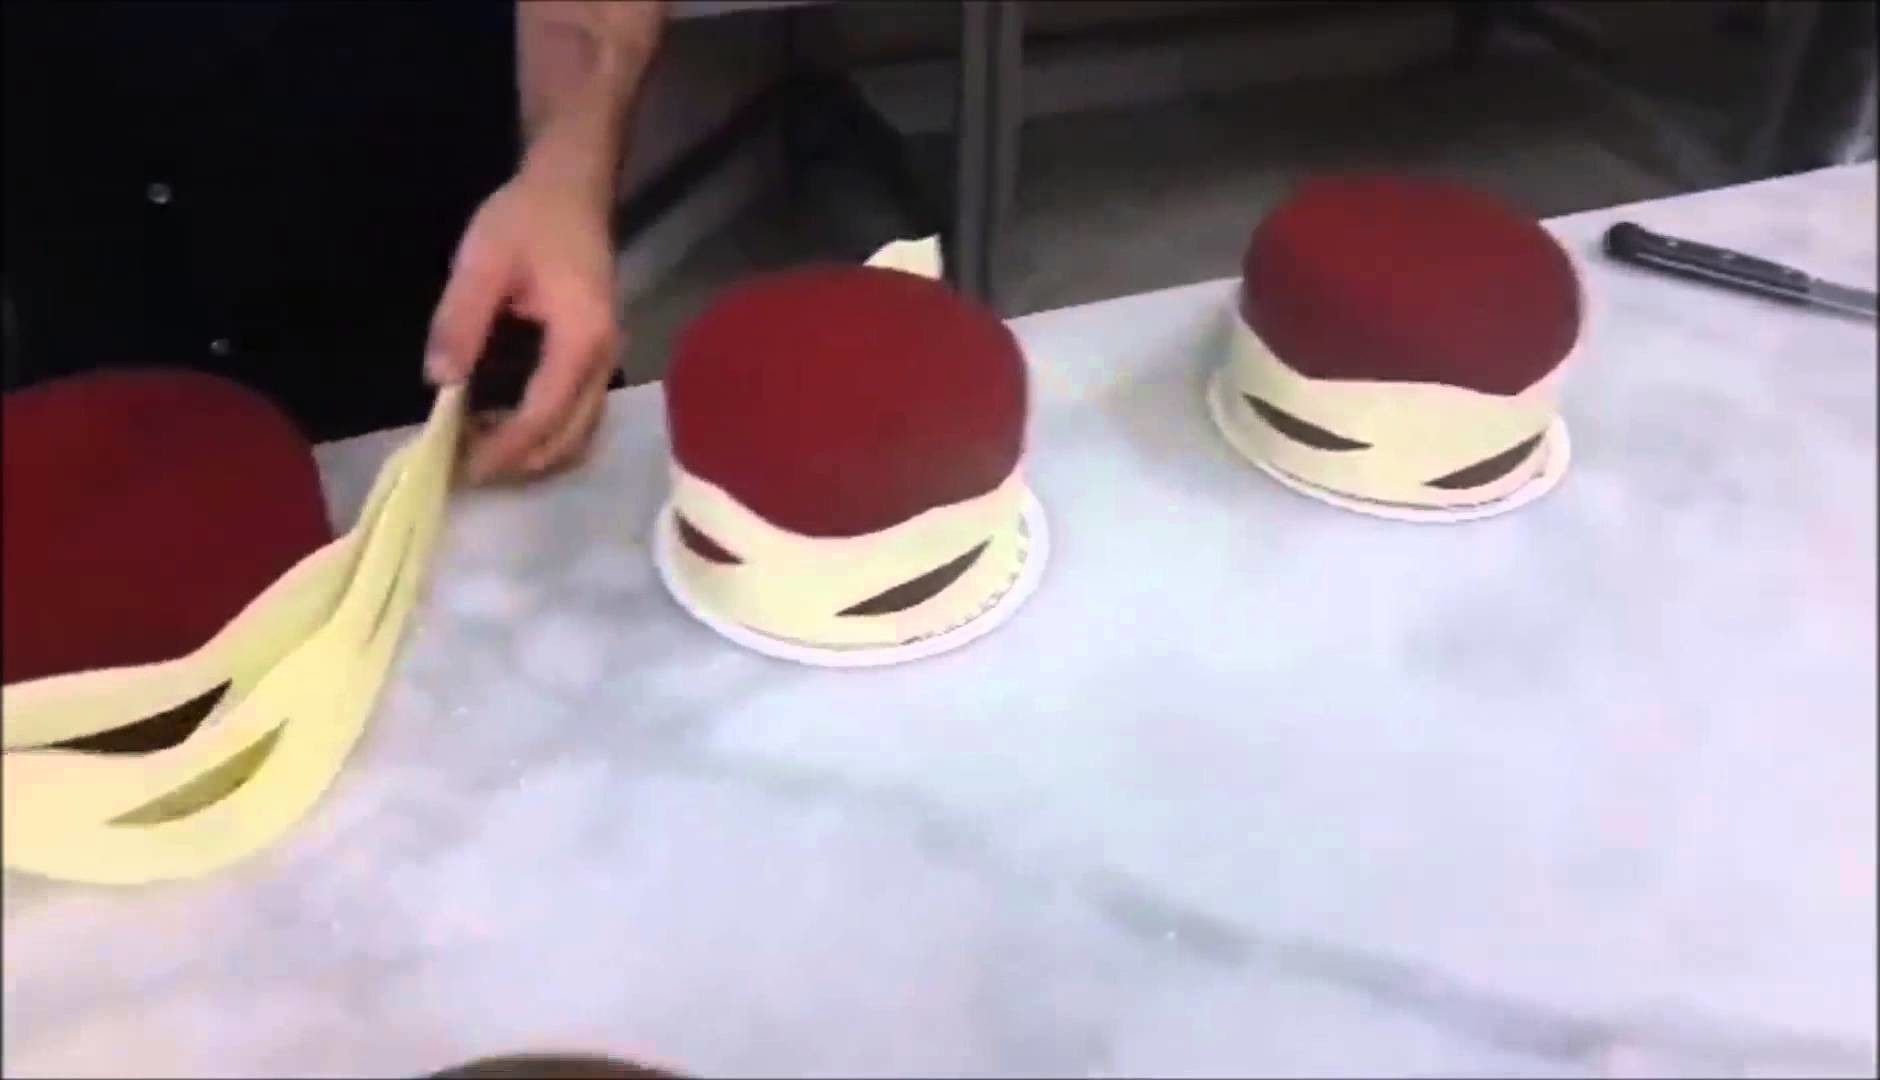 How To Make Chocolate Garnishes Decorations CAKE beautiful 2015